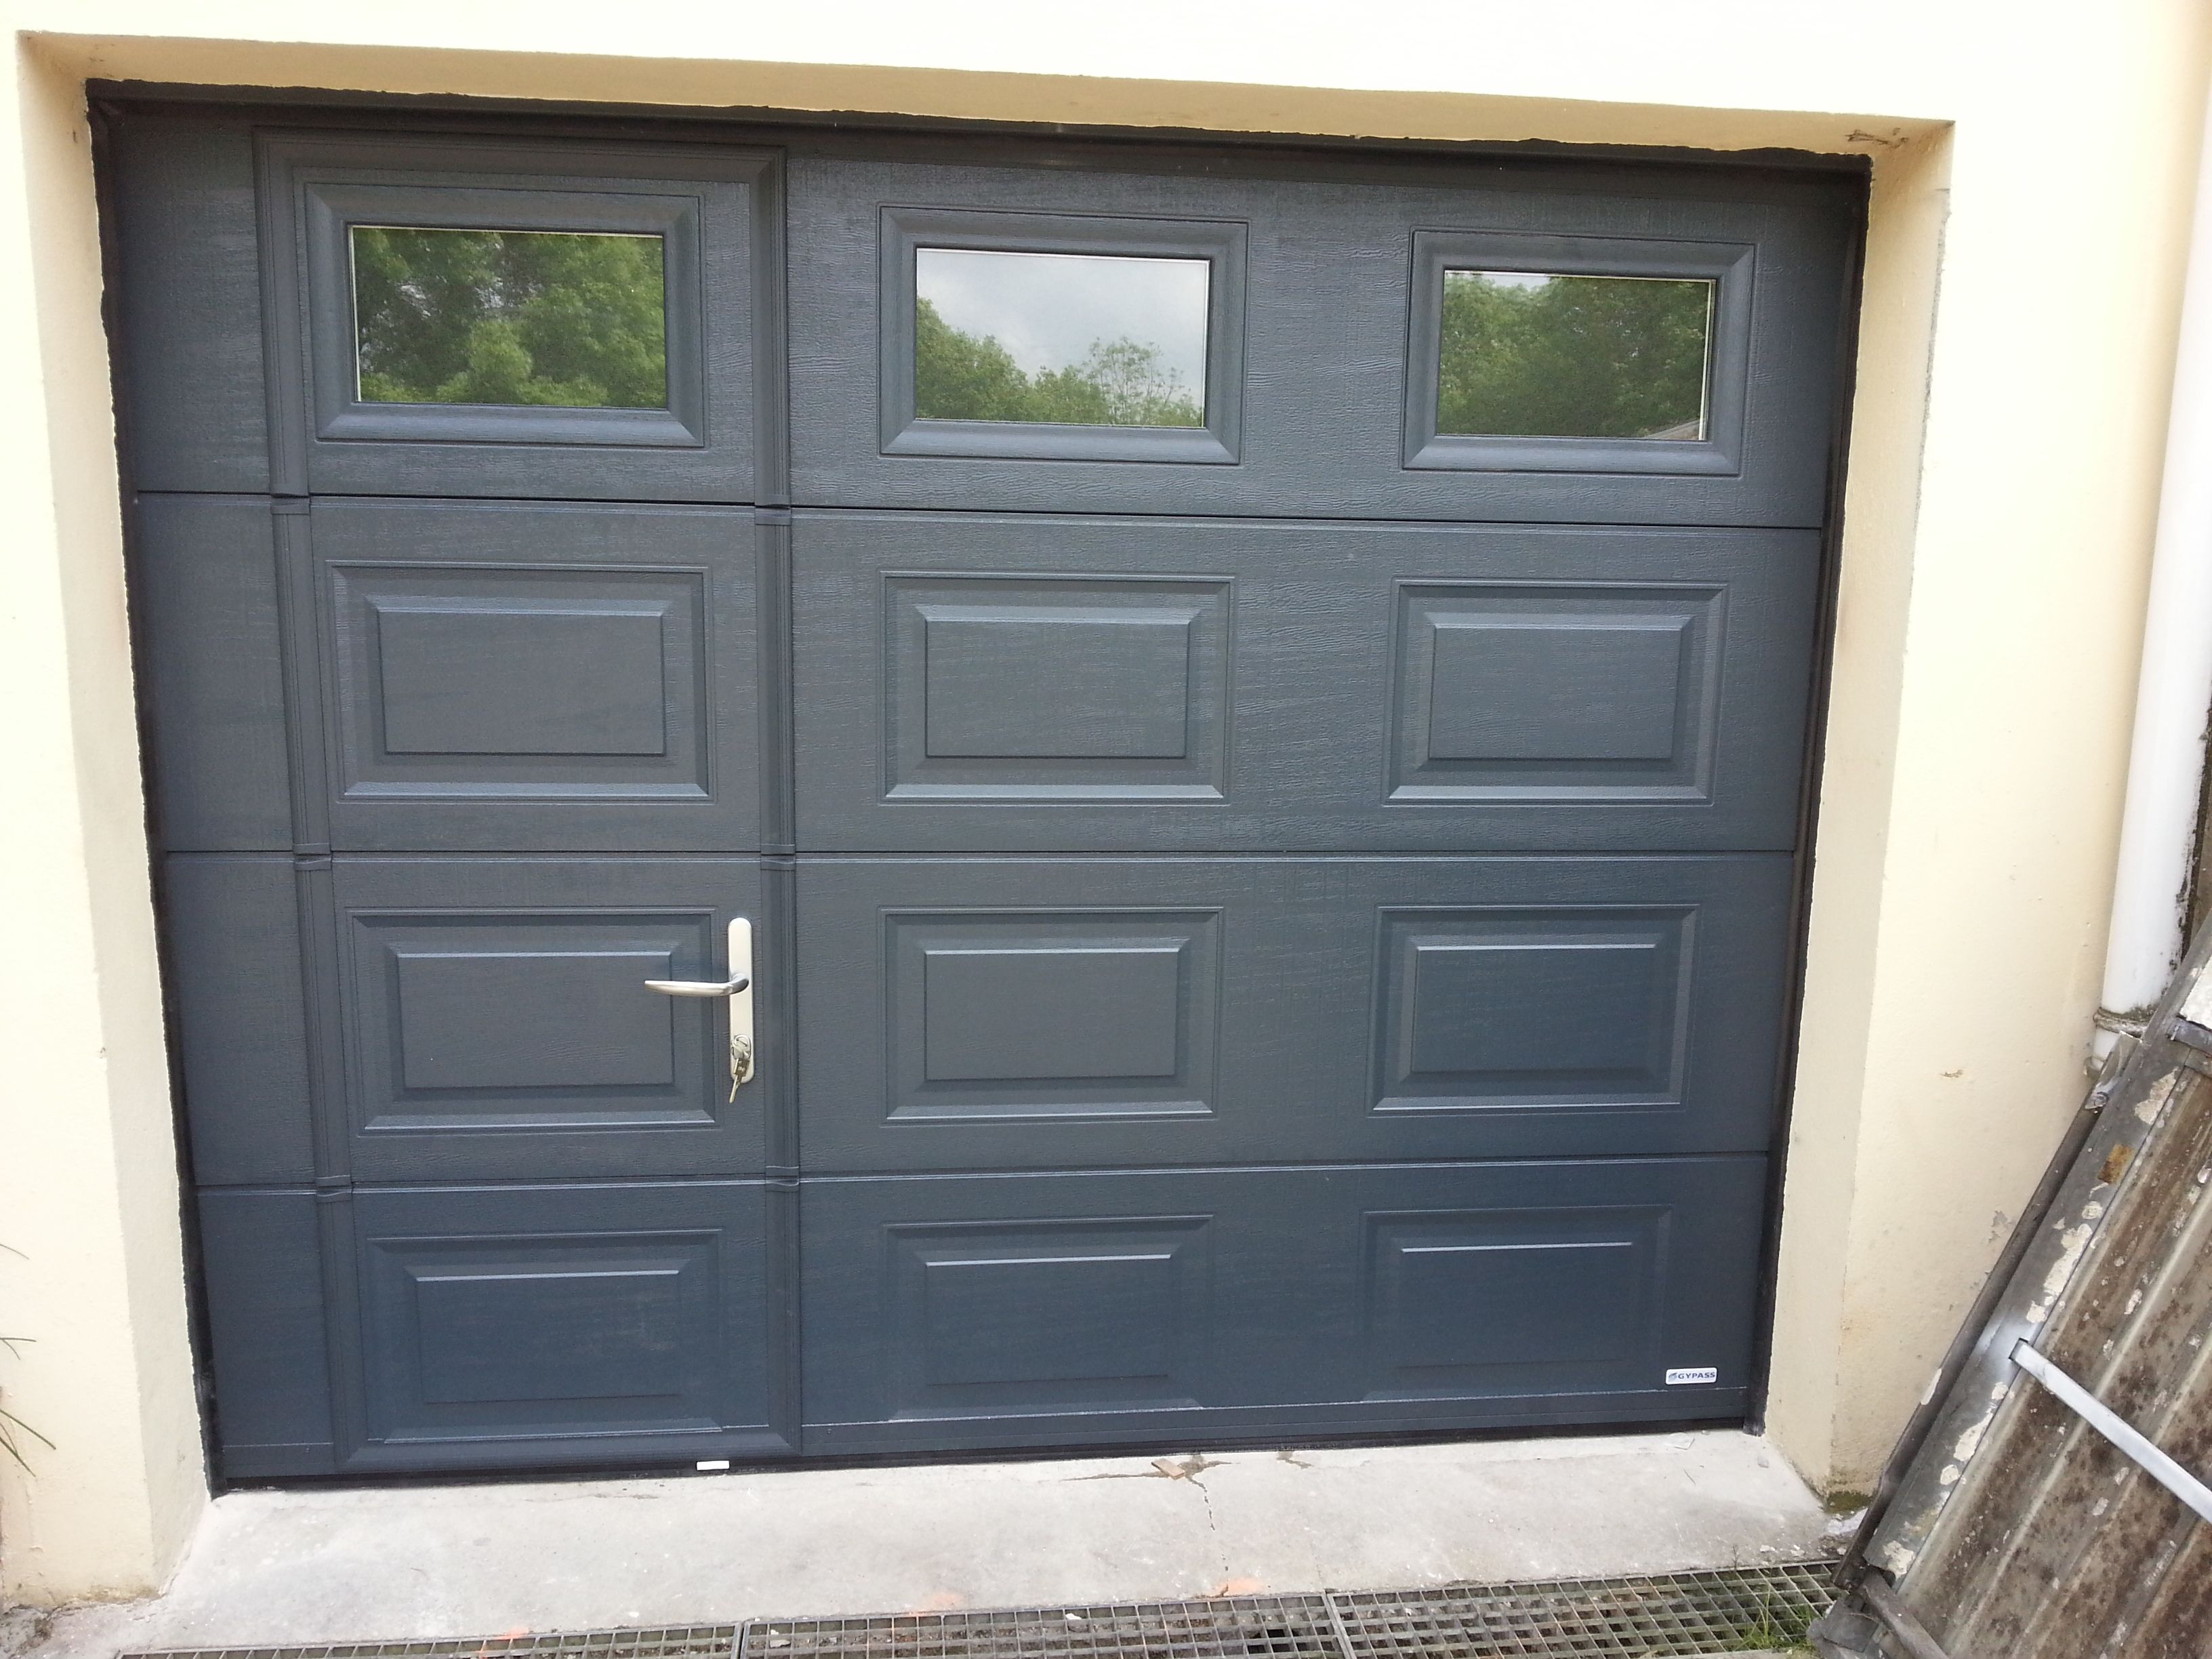 Porte sectionnelle garage avec portillon for Porte de garage basculante en aluminium